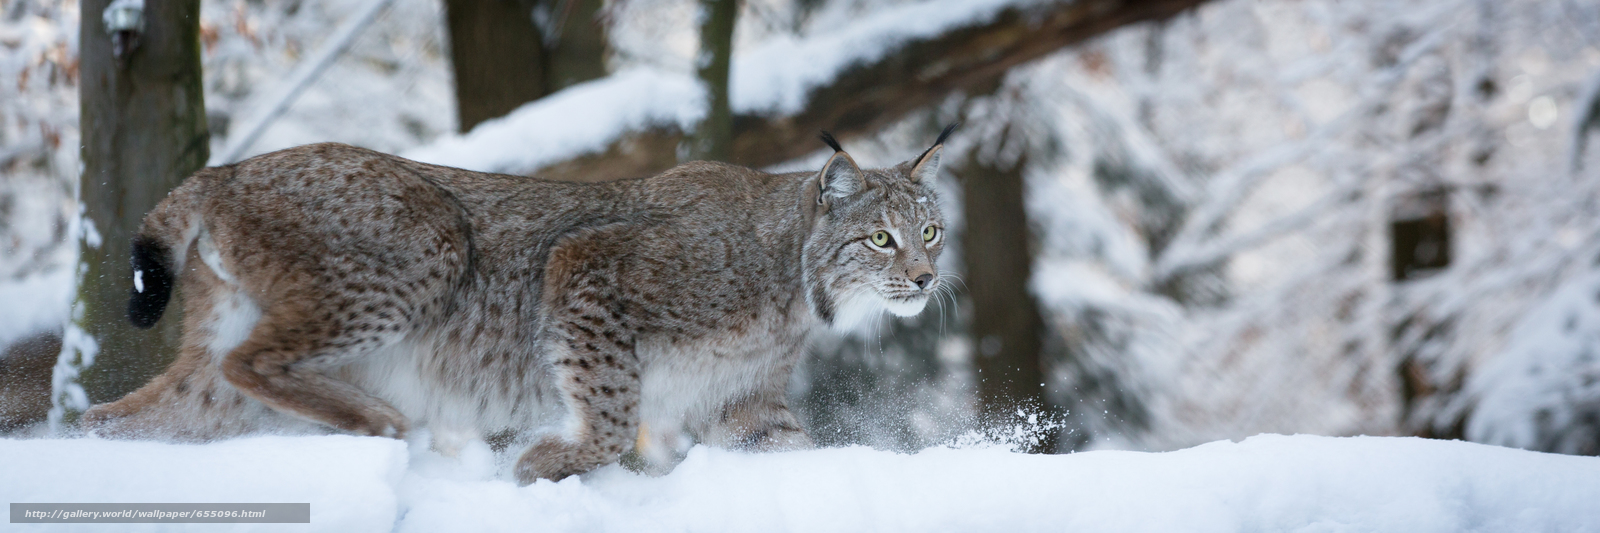 Download wallpaper lynx,  Lynx,  cat,  nature free desktop wallpaper in the resolution 5308x1767 — picture №655096